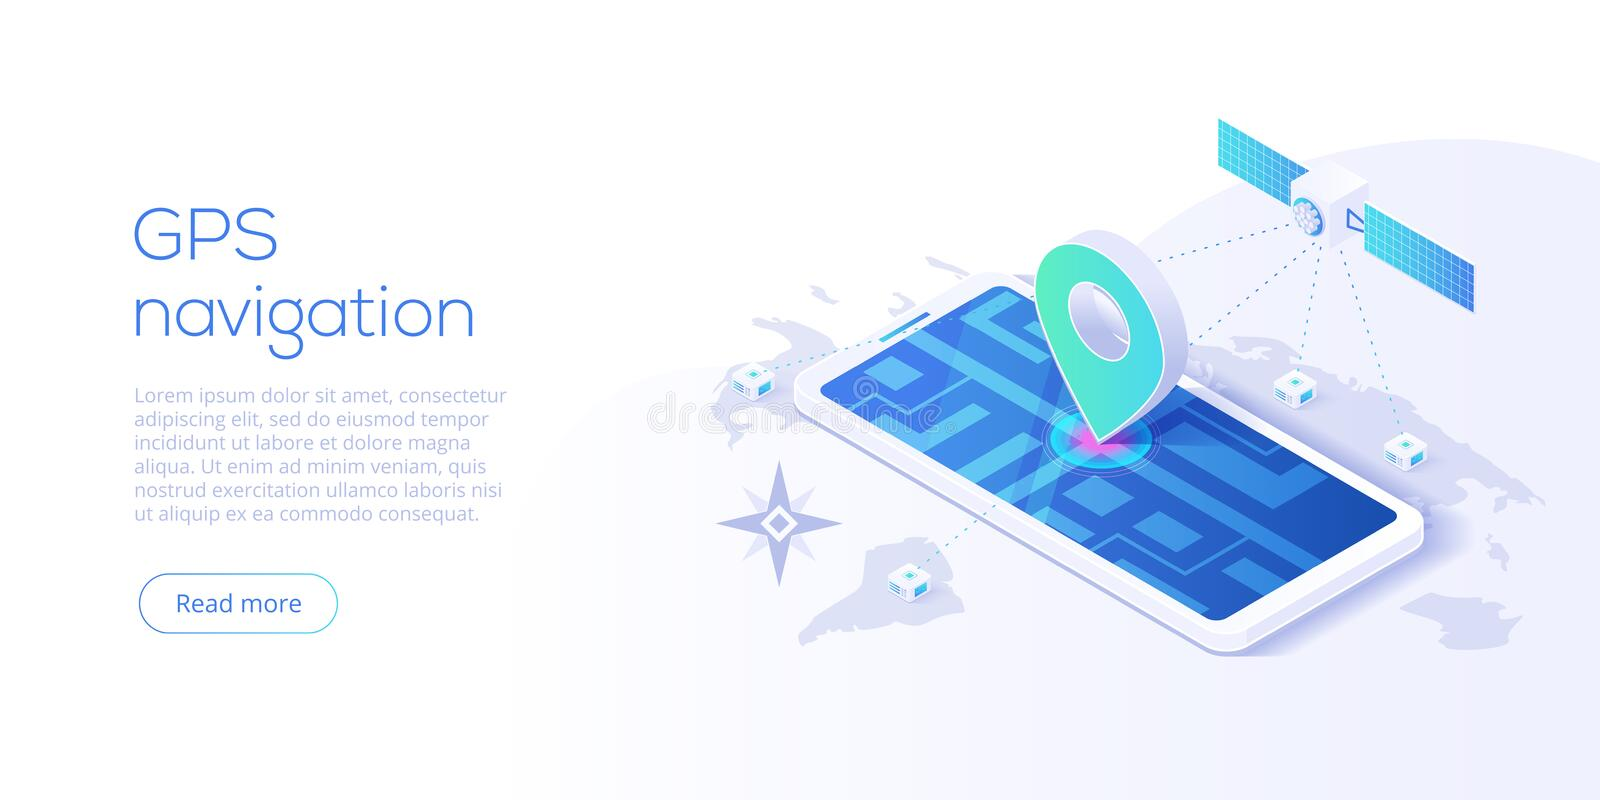 GPS navigation app concept in isometric vector illustration. Smartphone application for global positioning system. Satellite royalty free illustration